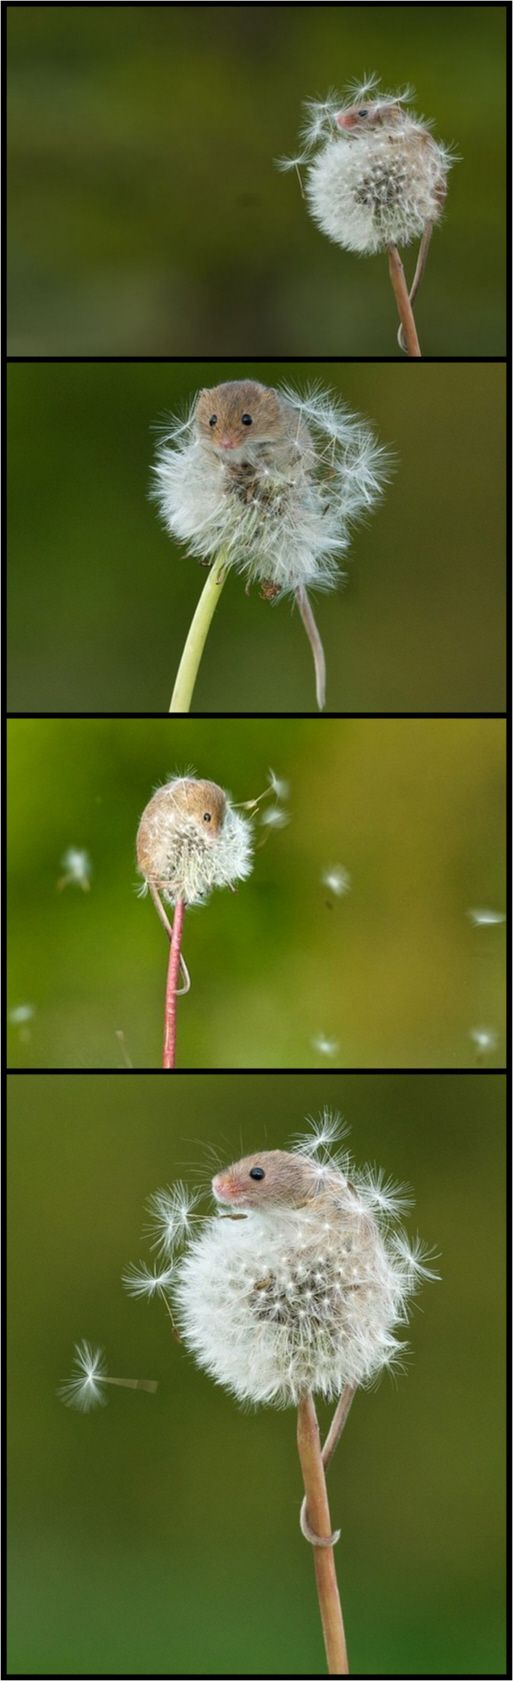 Photographer Matt Binstead captured these stunning photos of a TINY harvest mouse as it clinged to a dandelion blowing in the wind in the British Wildlife Centre in Lingfield.